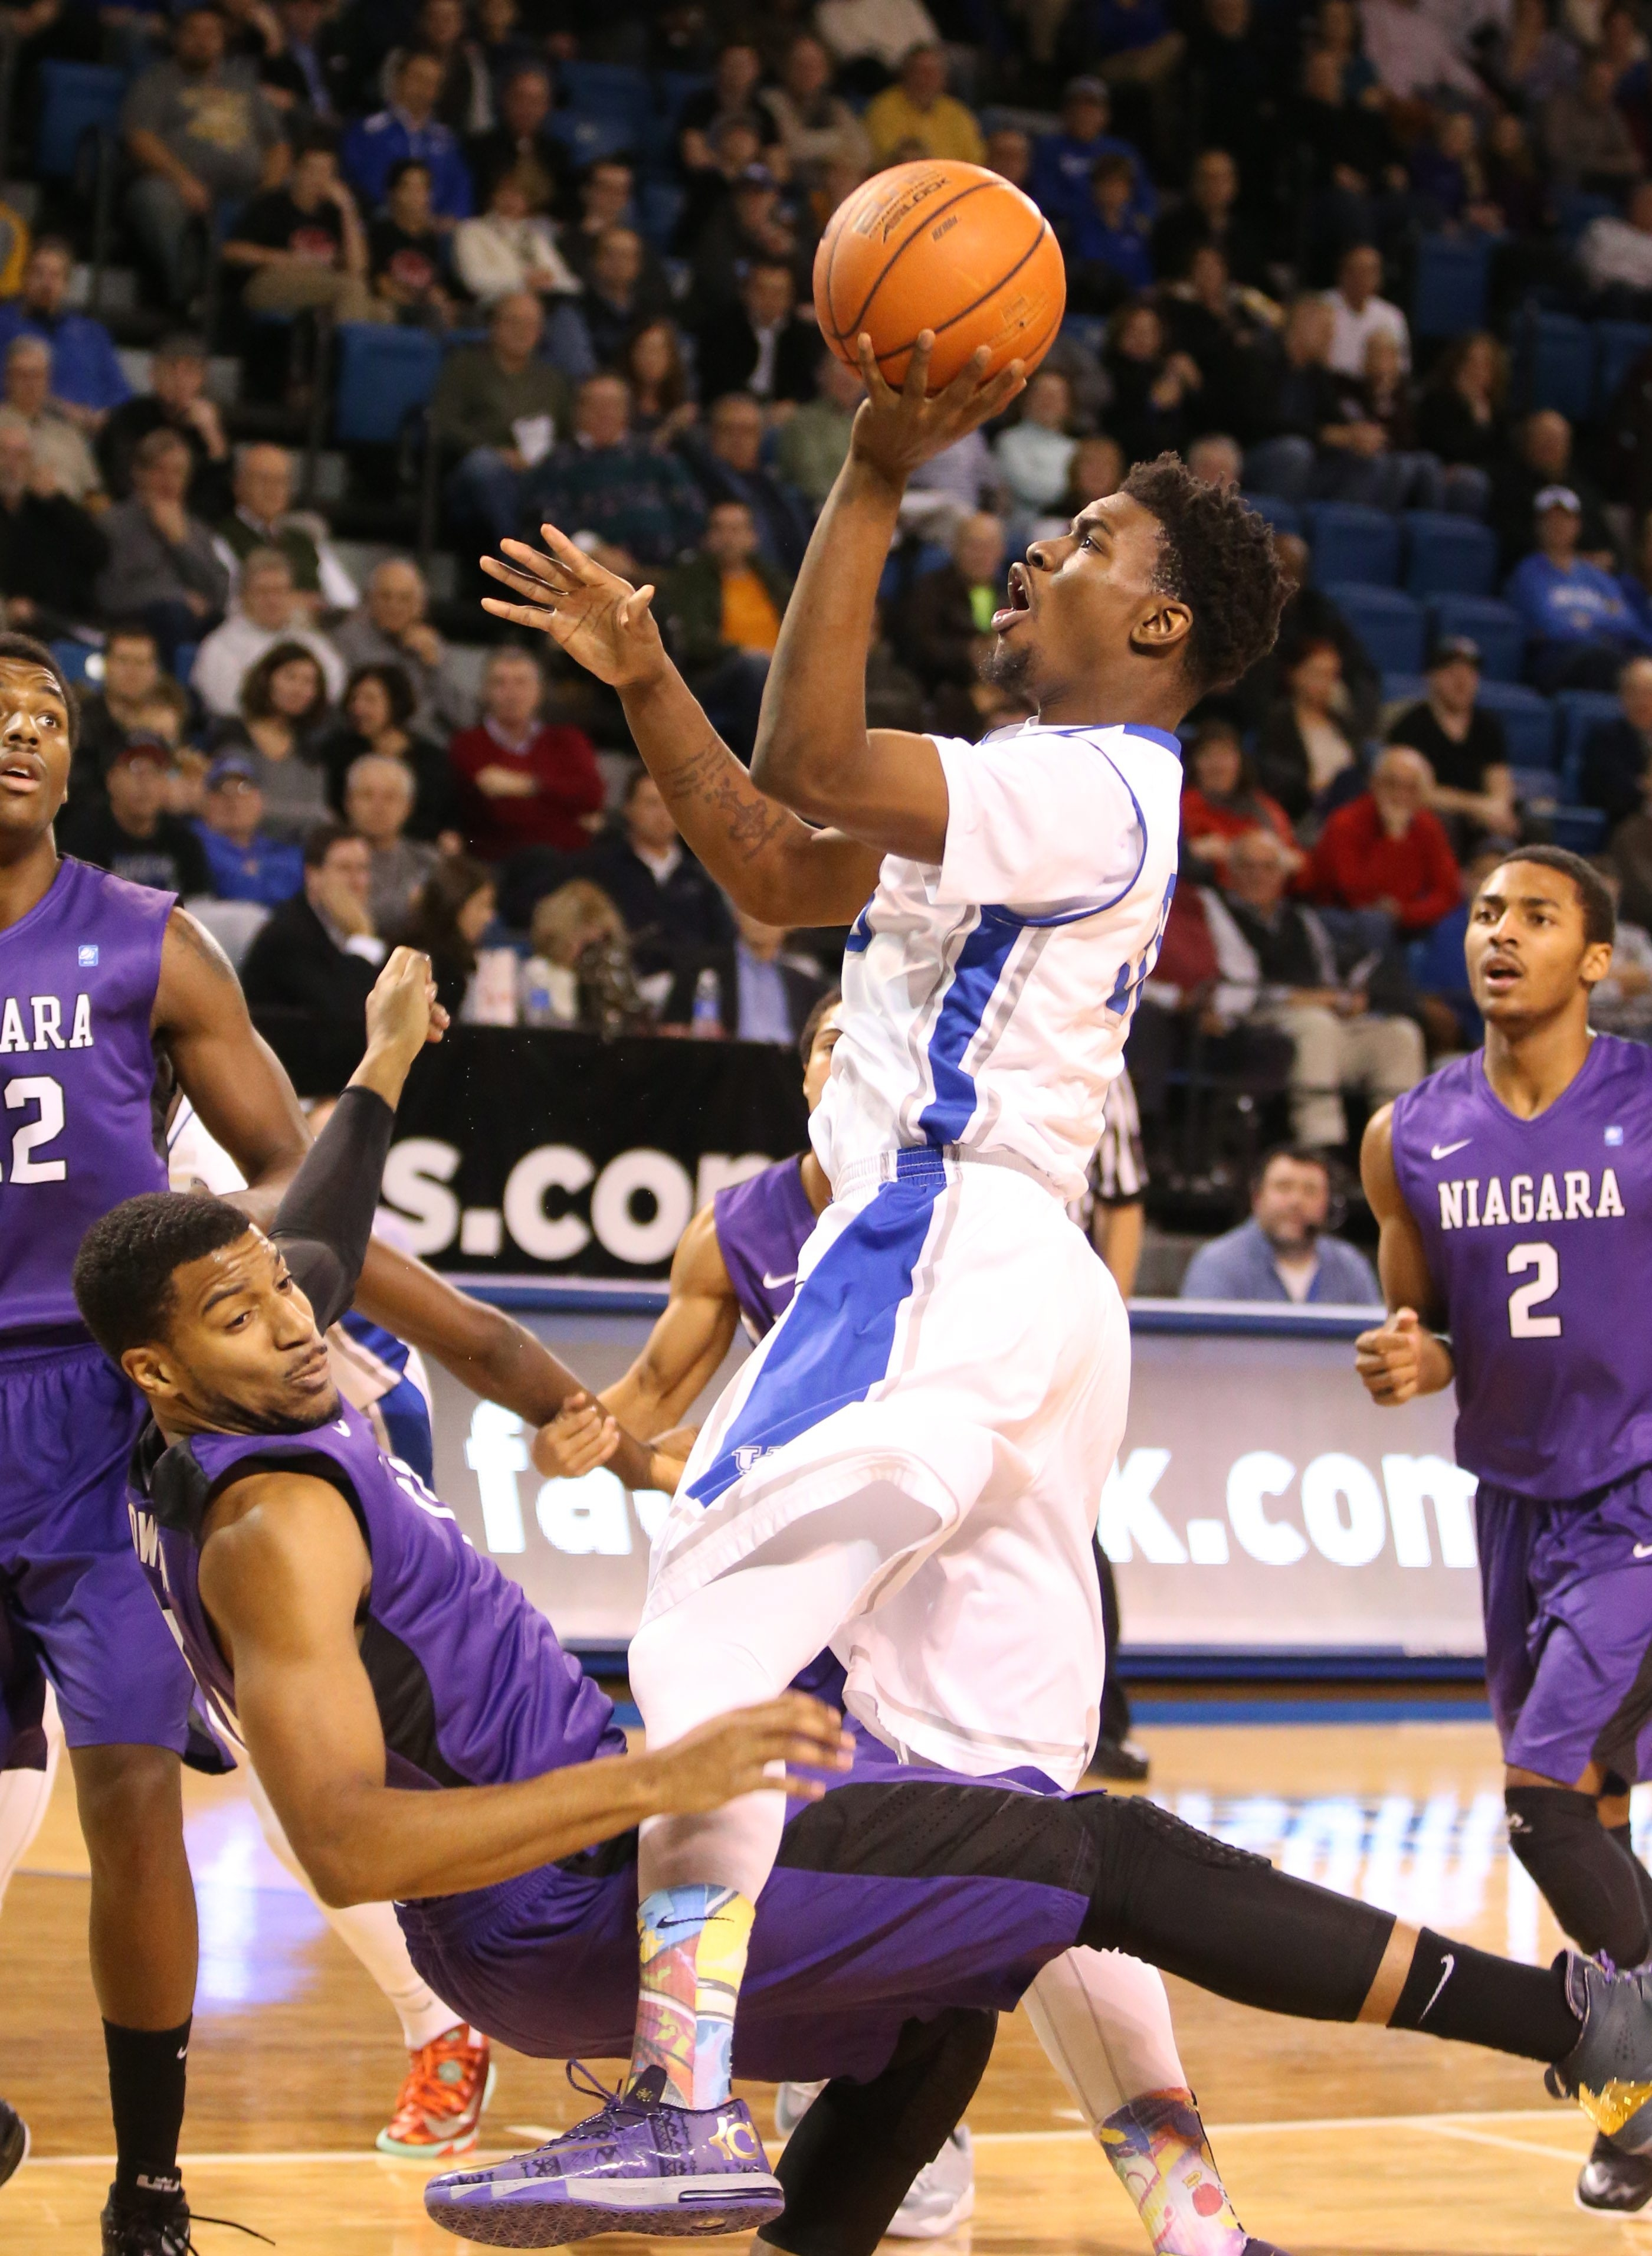 UB forward Xavier Ford puts up a left-handed shot to score two points over a falling Ramone Snowden of Niagara. Ford came off the bench to score 11 points and get 13 rebounds.